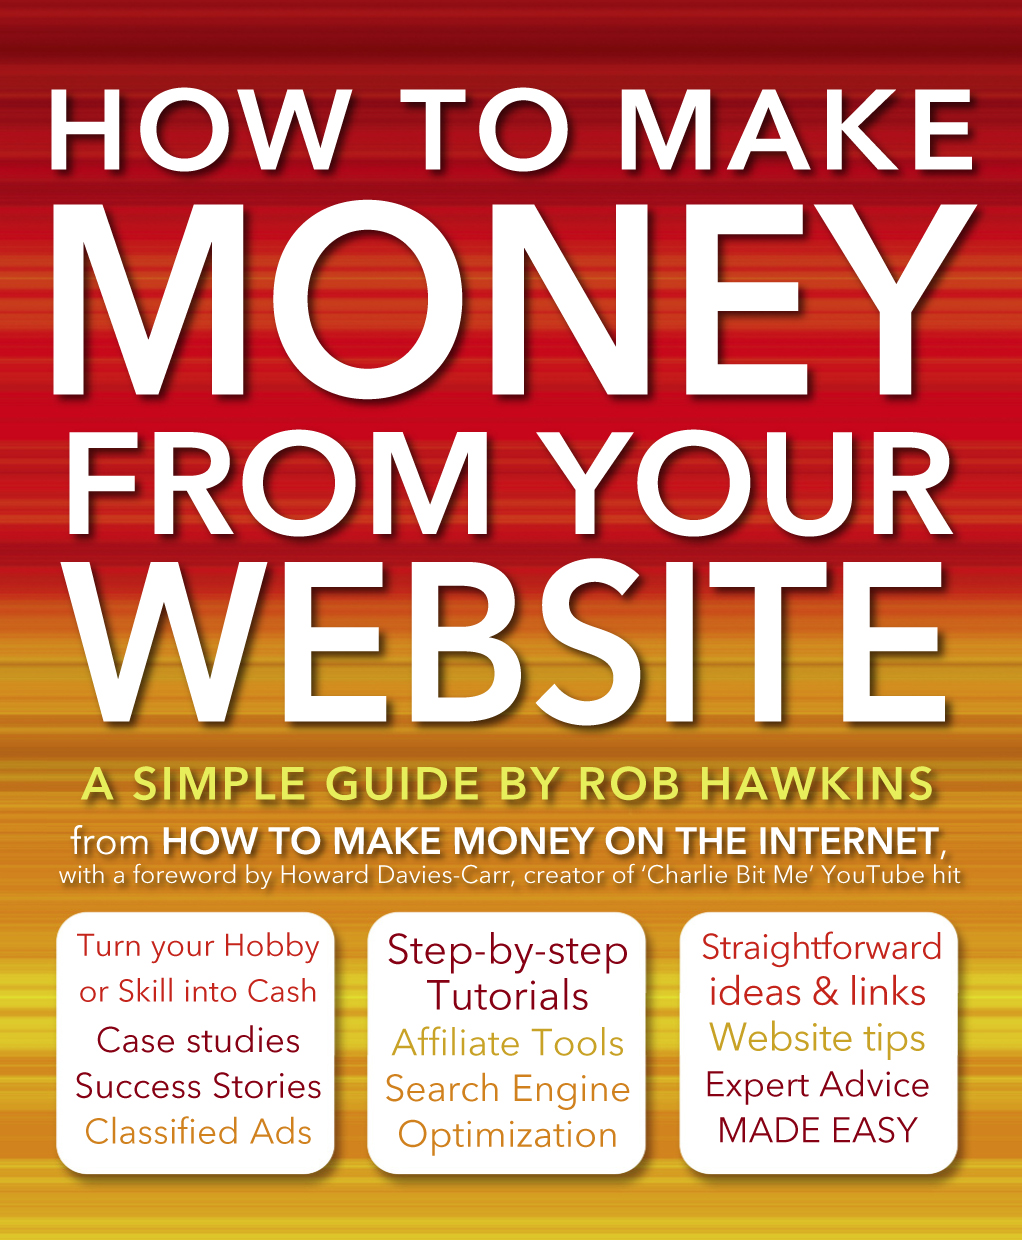 How to Make Money from Your Website. Expert Advice Made Easy